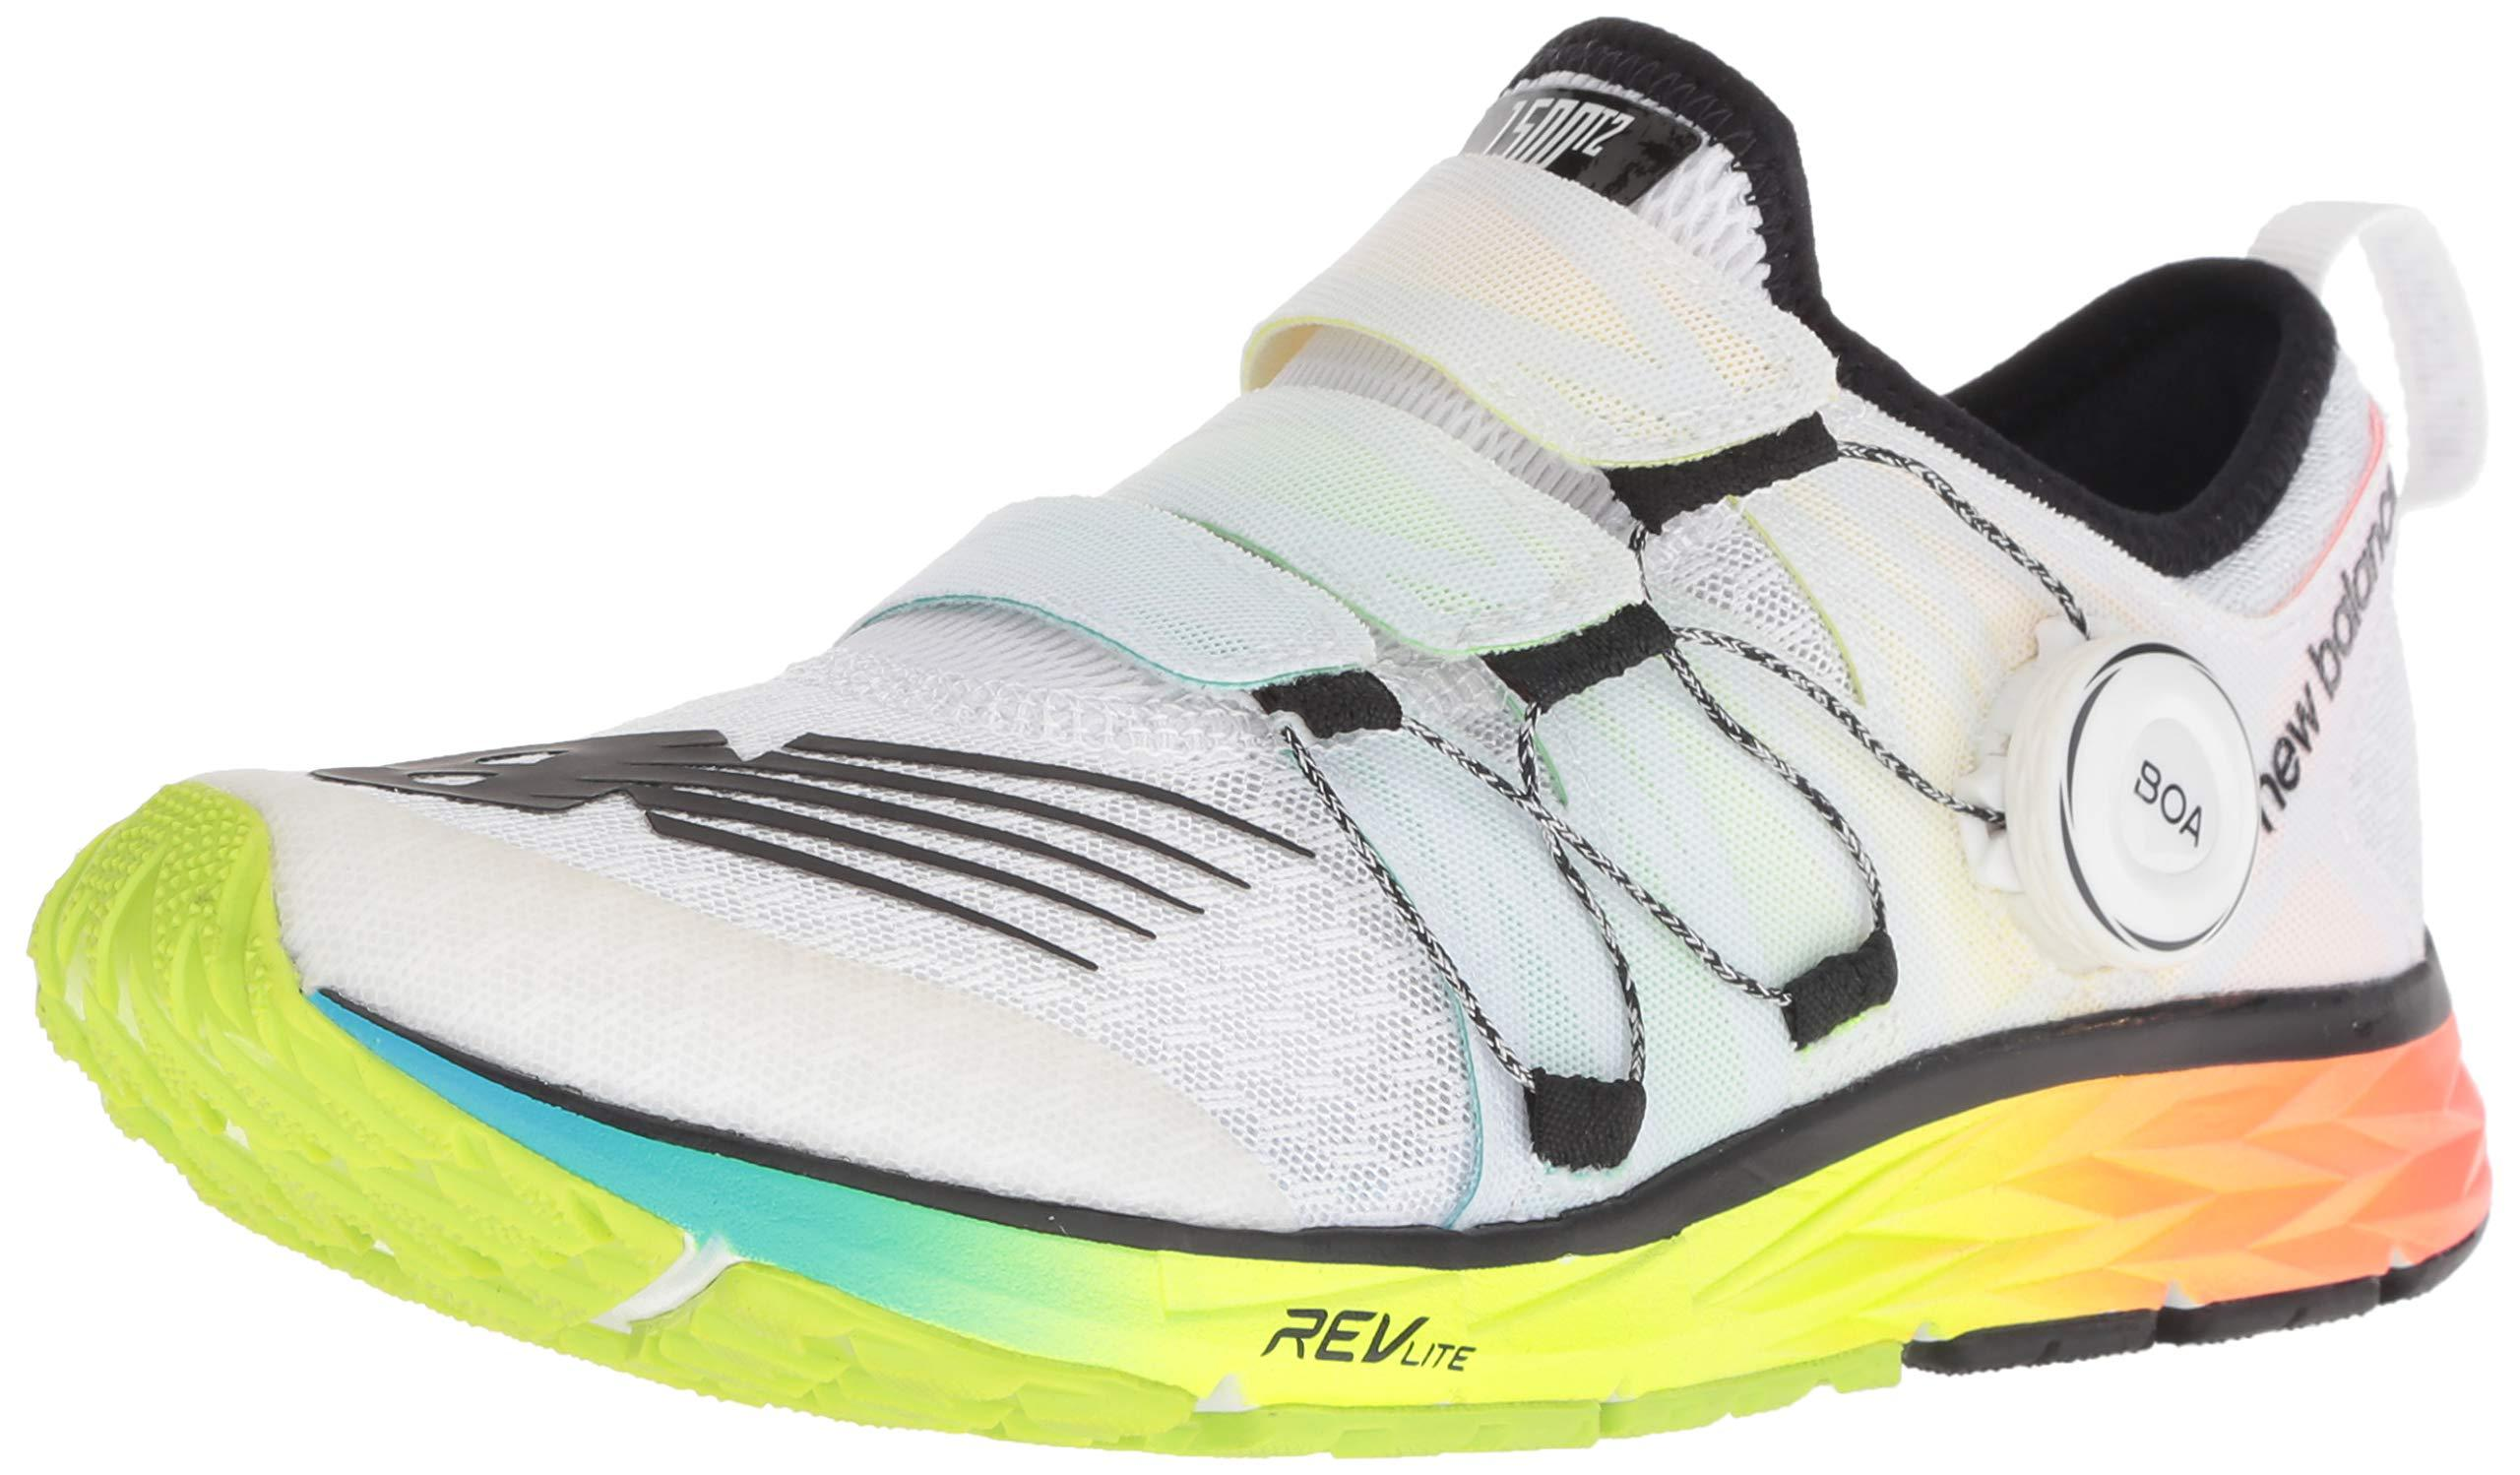 New Balance Synthetic 1500v4 Boa Running Shoes in White - Save 22 ...